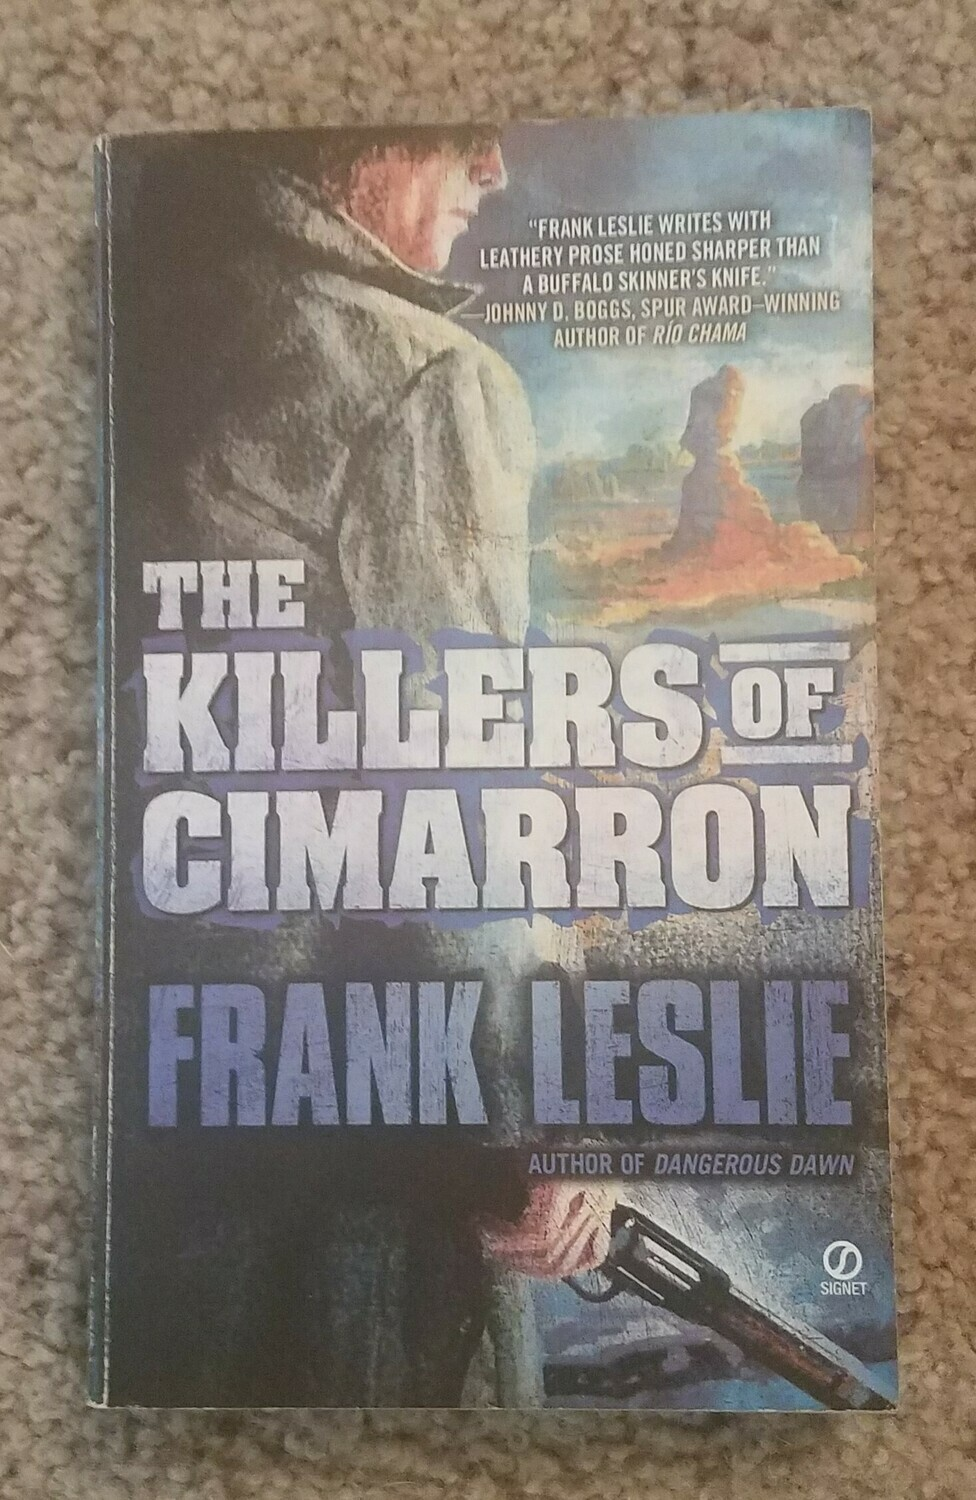 The Killers of Cimarron by Frank Leslie